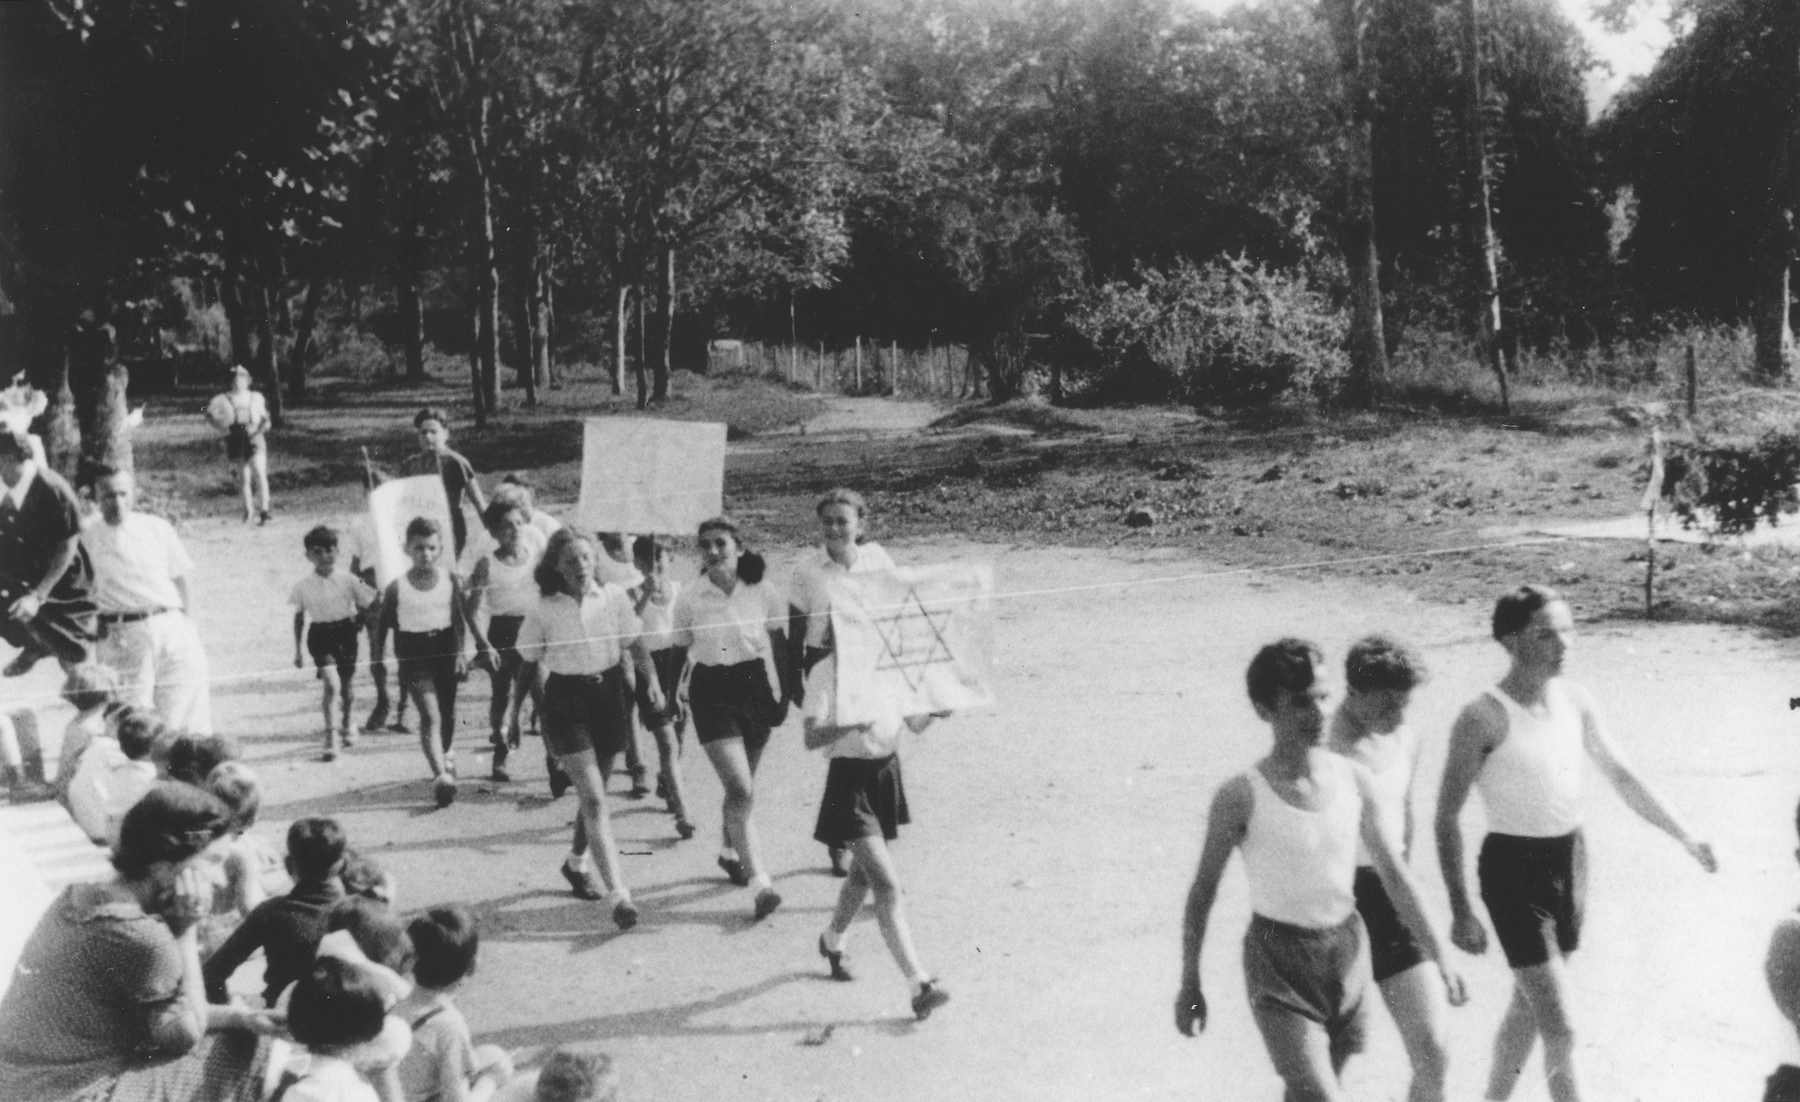 Jewish refugee children march with signs in front of the Chabannes children's home on sports day.  Among those pictured are Gerard Rosenzweig, Alex Kramskoi, Angel Haas, Louise Bontnik, Elsi Wolf, Anatole Zilberstein and Stephan Lewy.